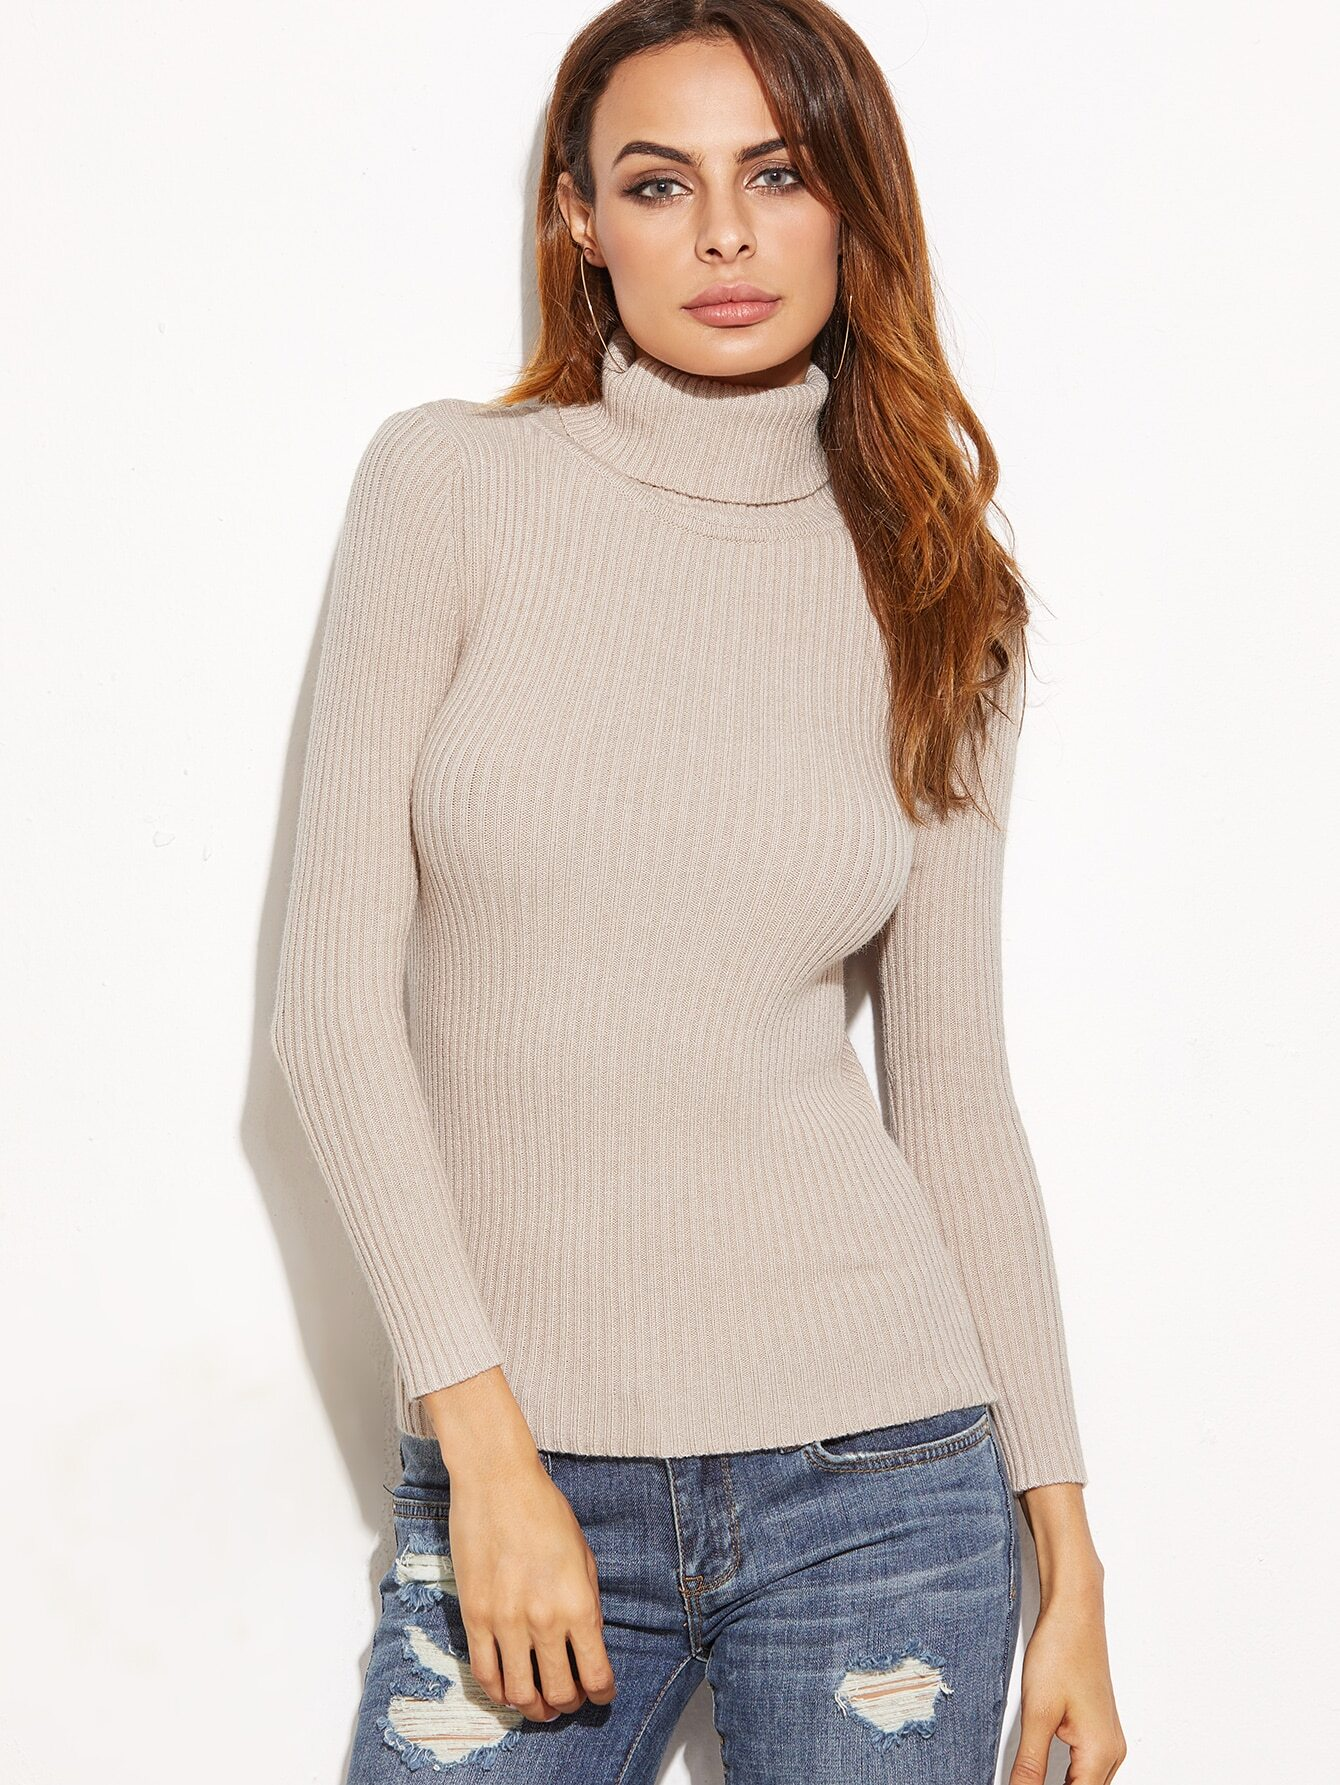 Rib-Knit Wool-Blend Turtleneck Sweater. $ The Row Marton Cable-Knit Cashmere Sweater. $1, JoosTricot Compact Knit Cotton-Blend Turtleneck Sweater. $ Sies Marjan Courtney Metallic Crewneck Sweater. $ The Row Aetra Cashmere-Blend V-Neck Sweater. $ JoosTricot.